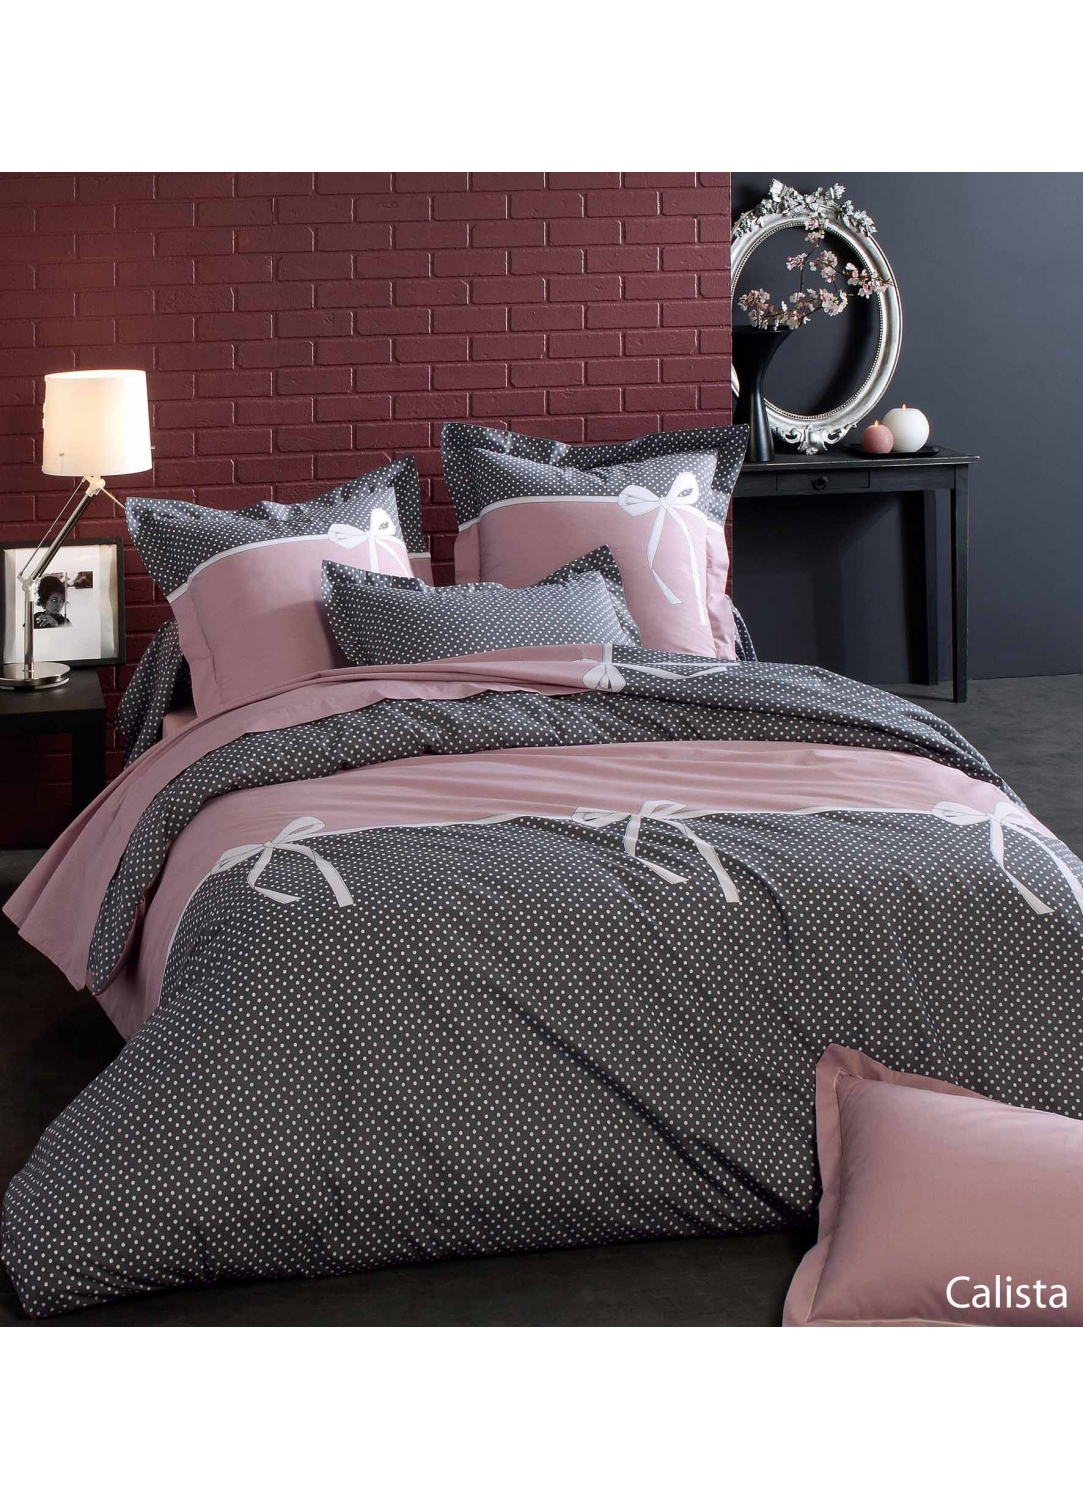 housse de couette calista imprim s pois et noeud noir. Black Bedroom Furniture Sets. Home Design Ideas